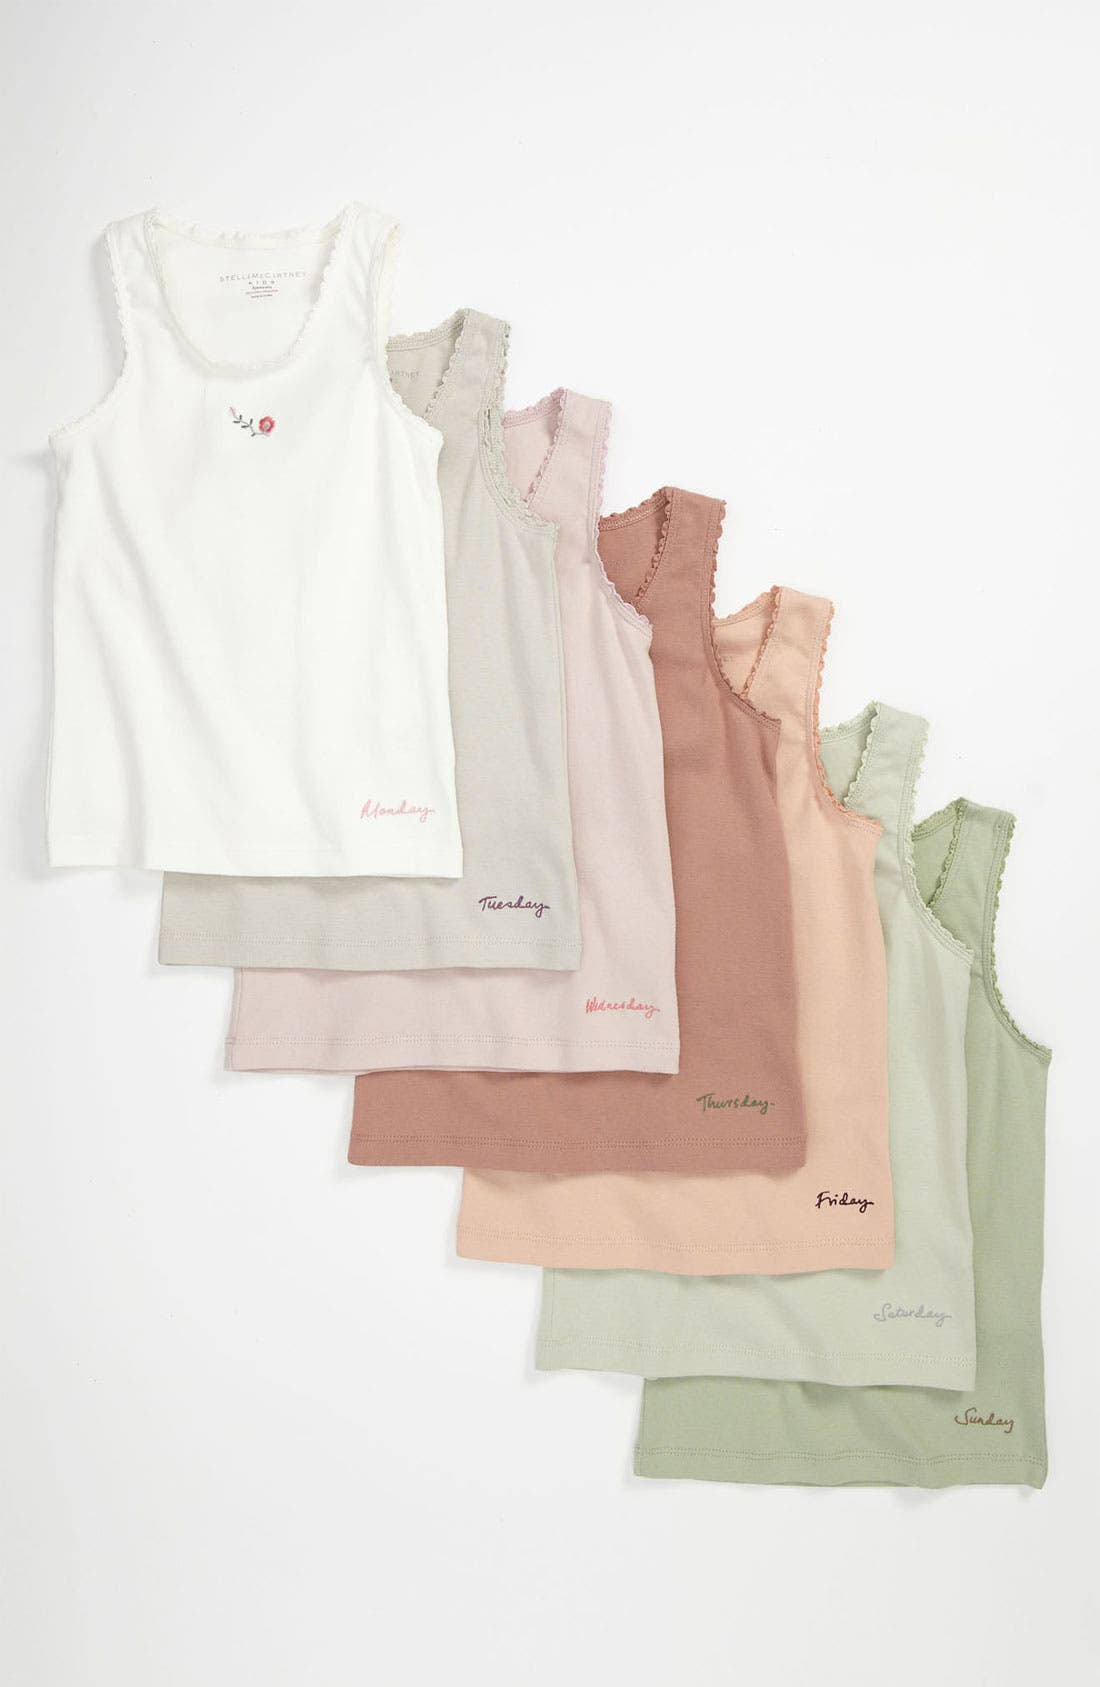 Main Image - Stella McCartney Kids 'Clementina' Tank Top (Set of 7) (Toddler, Little Girls & Big Girls)